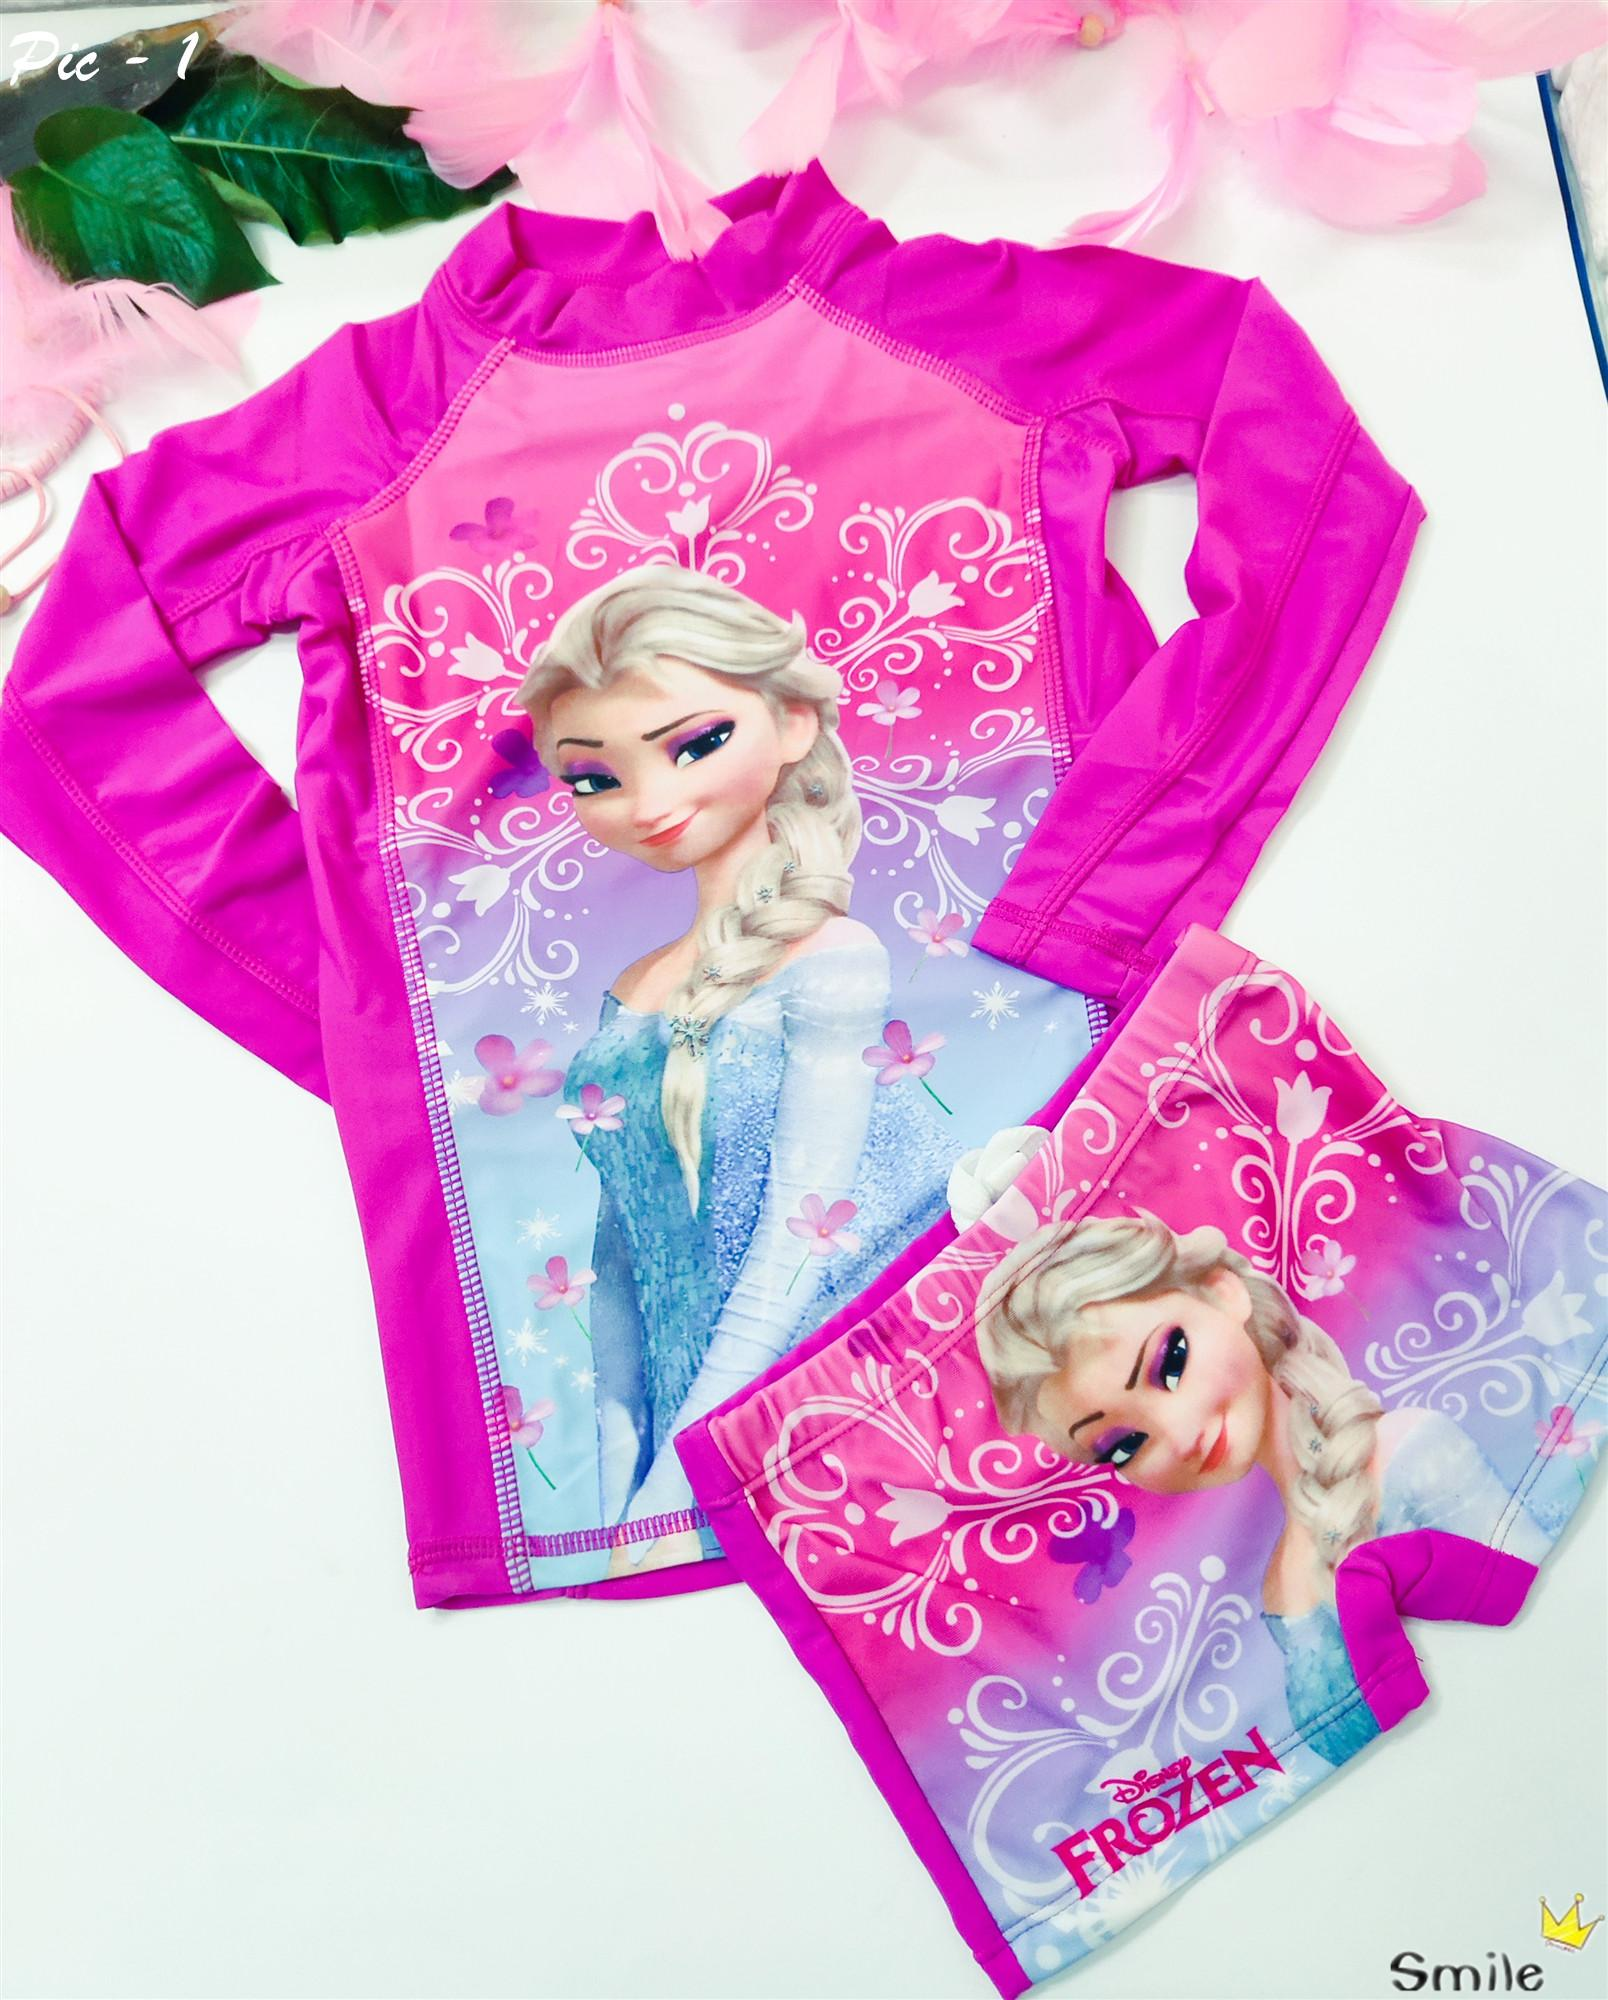 3c5e0d8437 Girls Swimsuits for sale - Swimsuits for Girls Online Deals & Prices ...